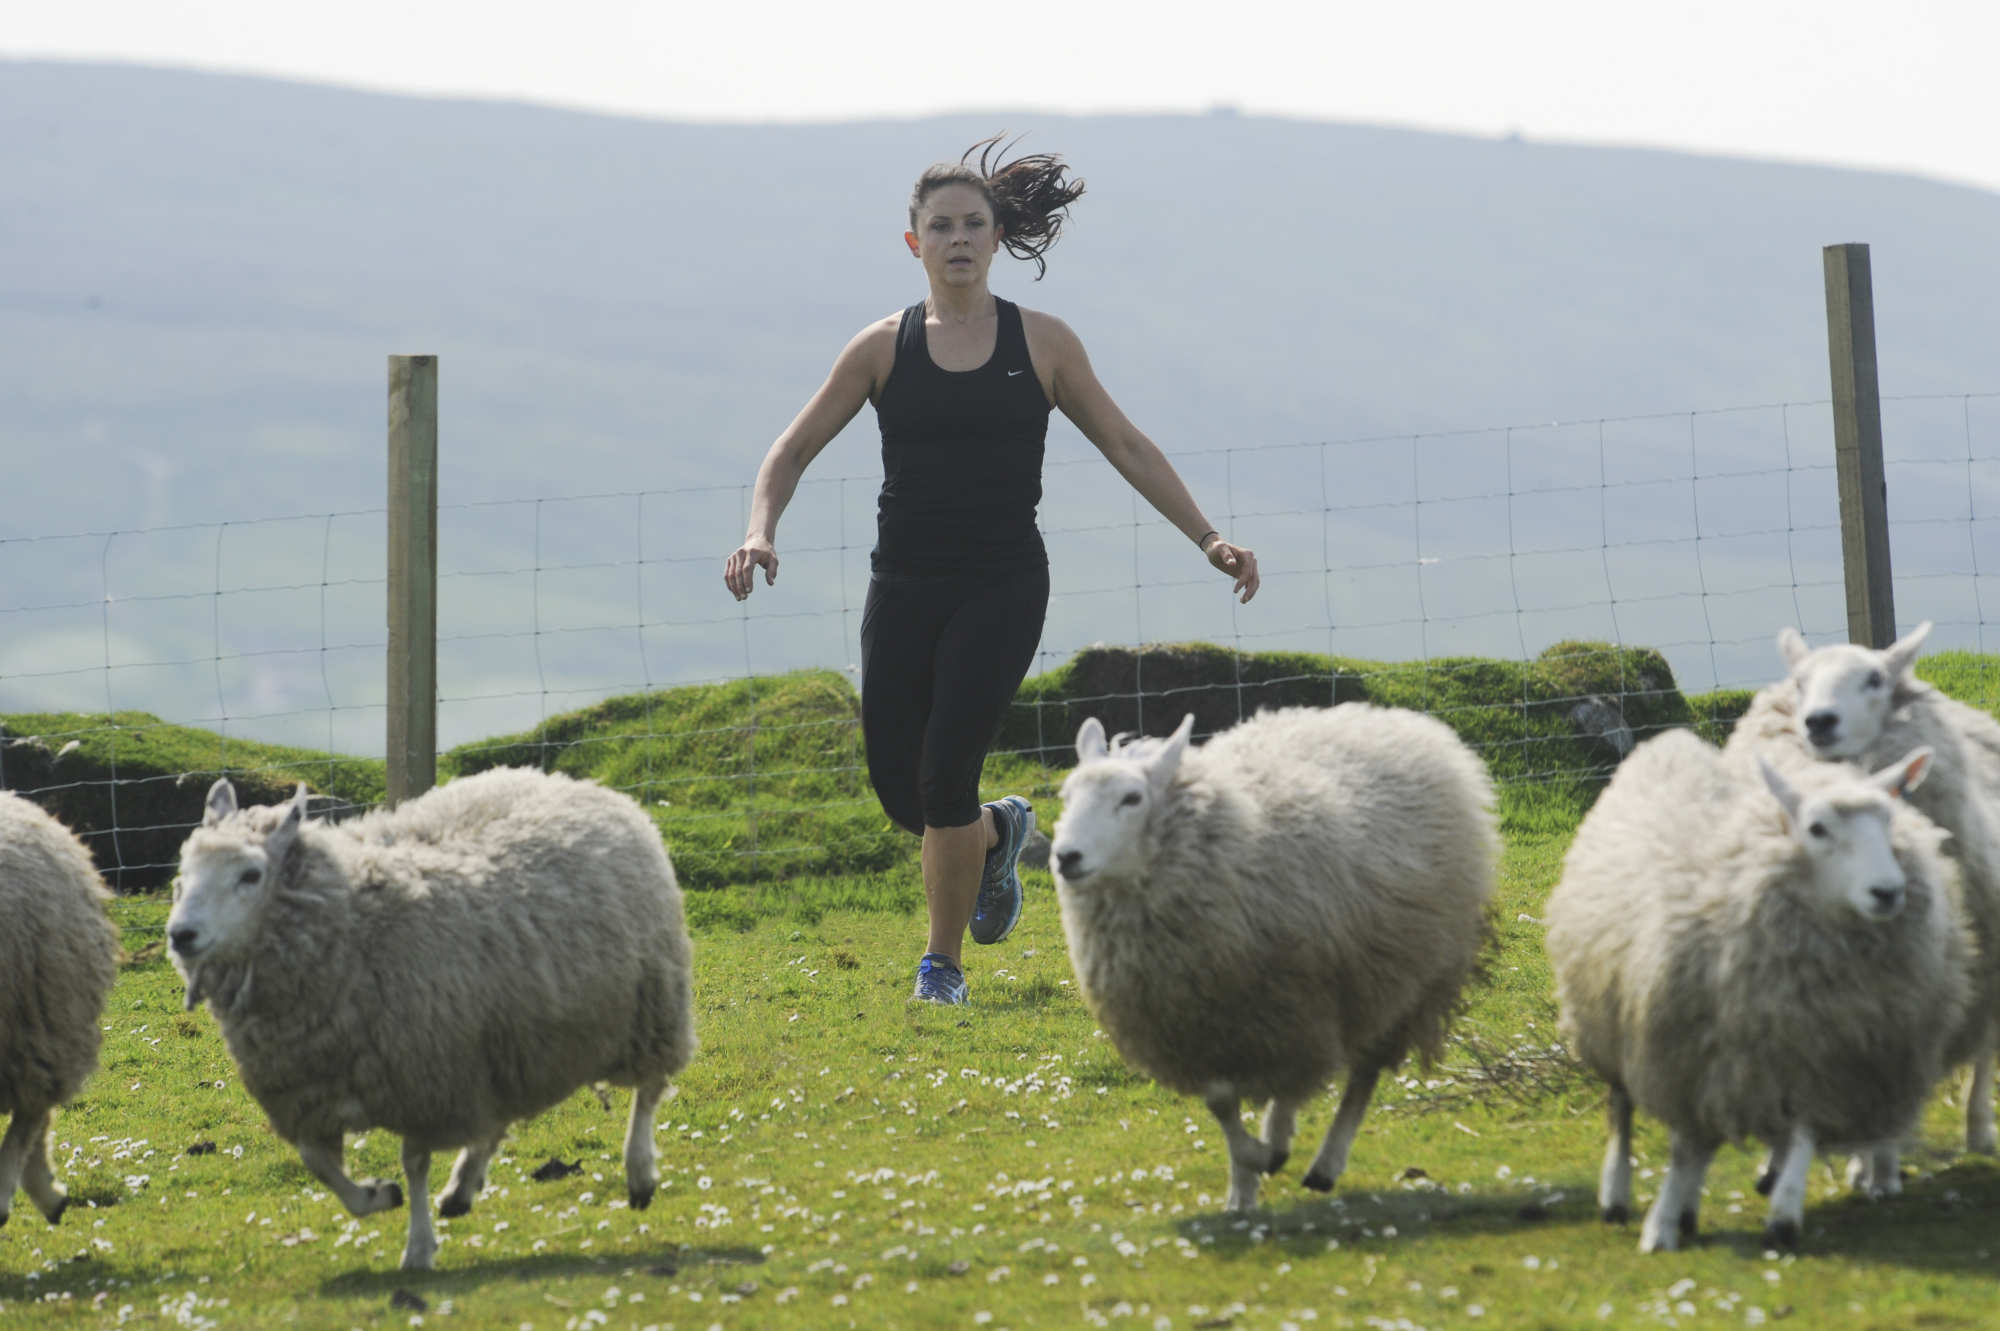 Running after sheep